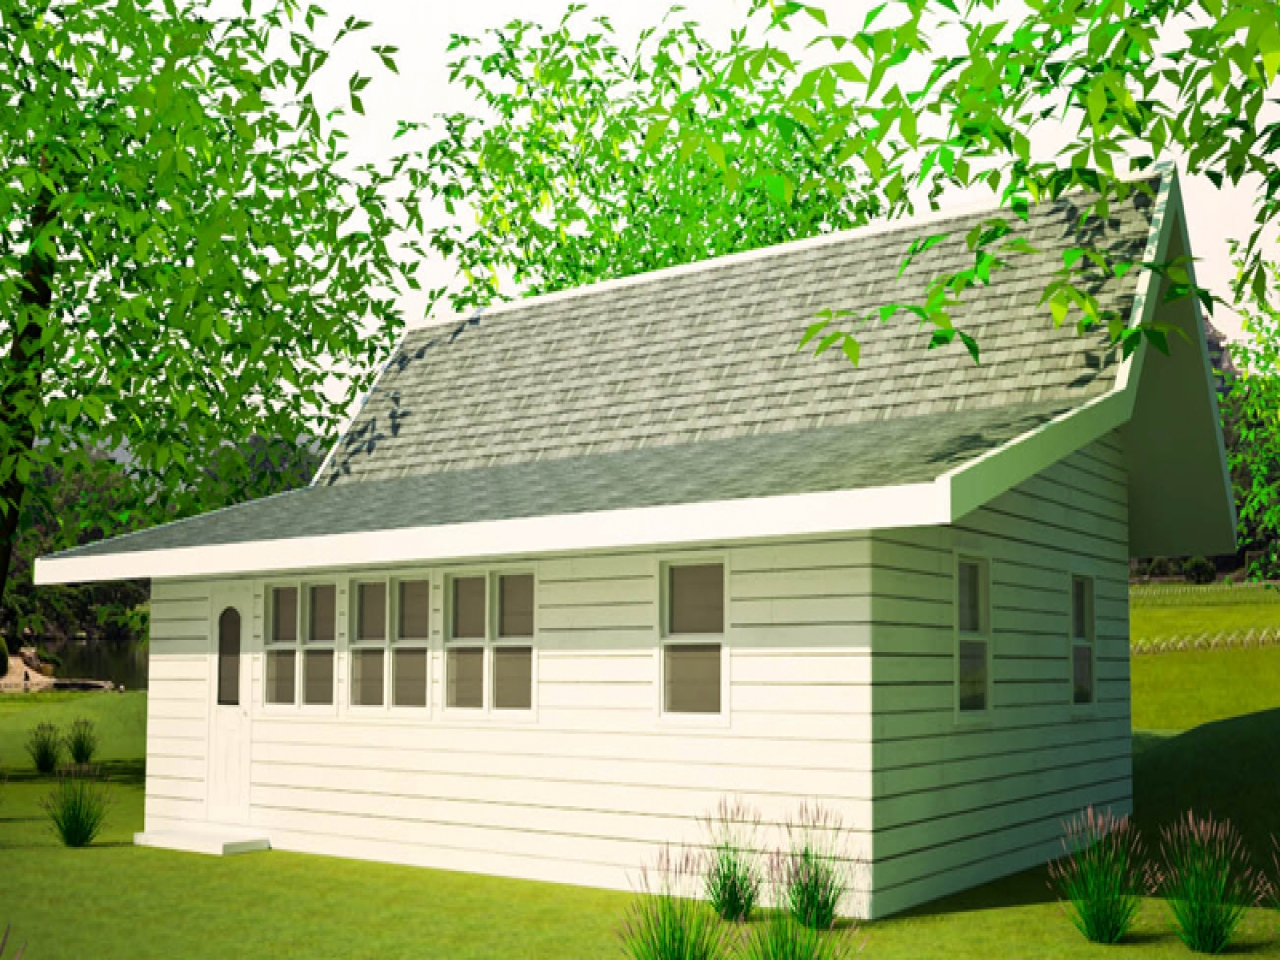 Double wide home plans 4 bedroom double wide mobile home - 4 bedroom double wide mobile homes ...